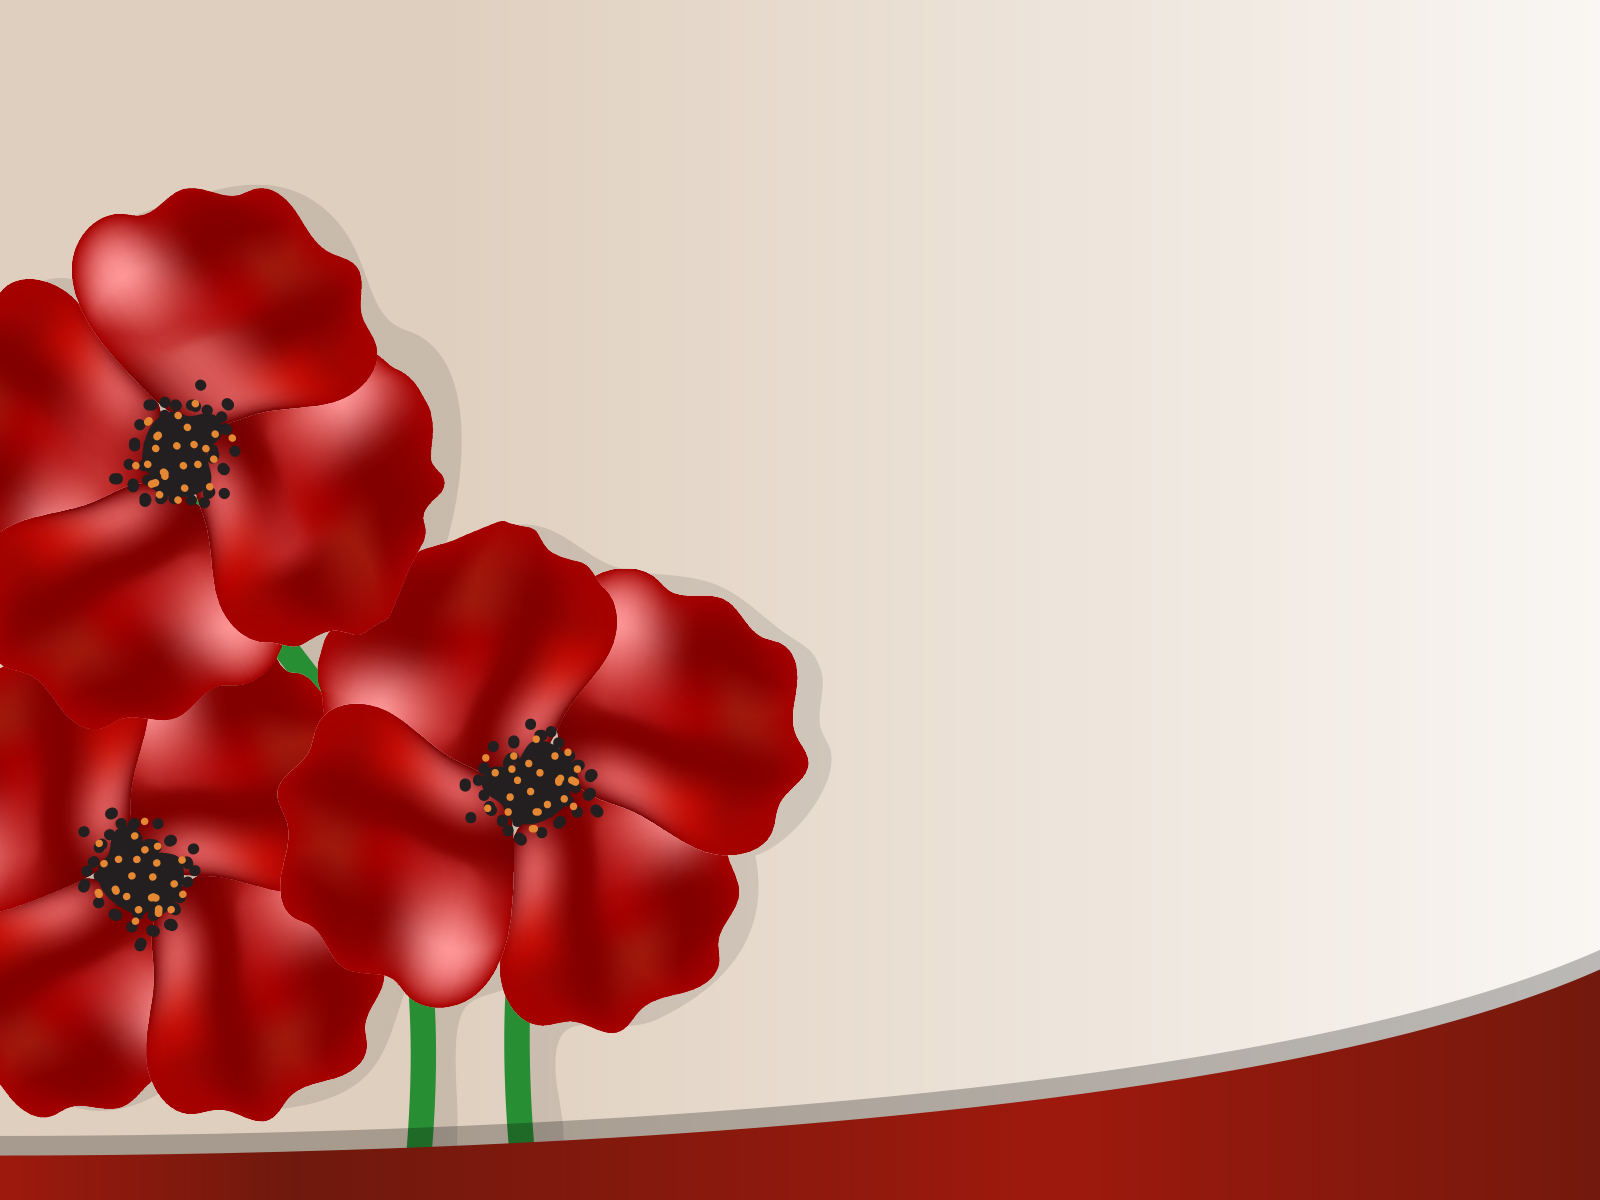 poppy flower backgrounds flowers templates free ppt religious christmas clipart free printable religious christmas clipart about giving